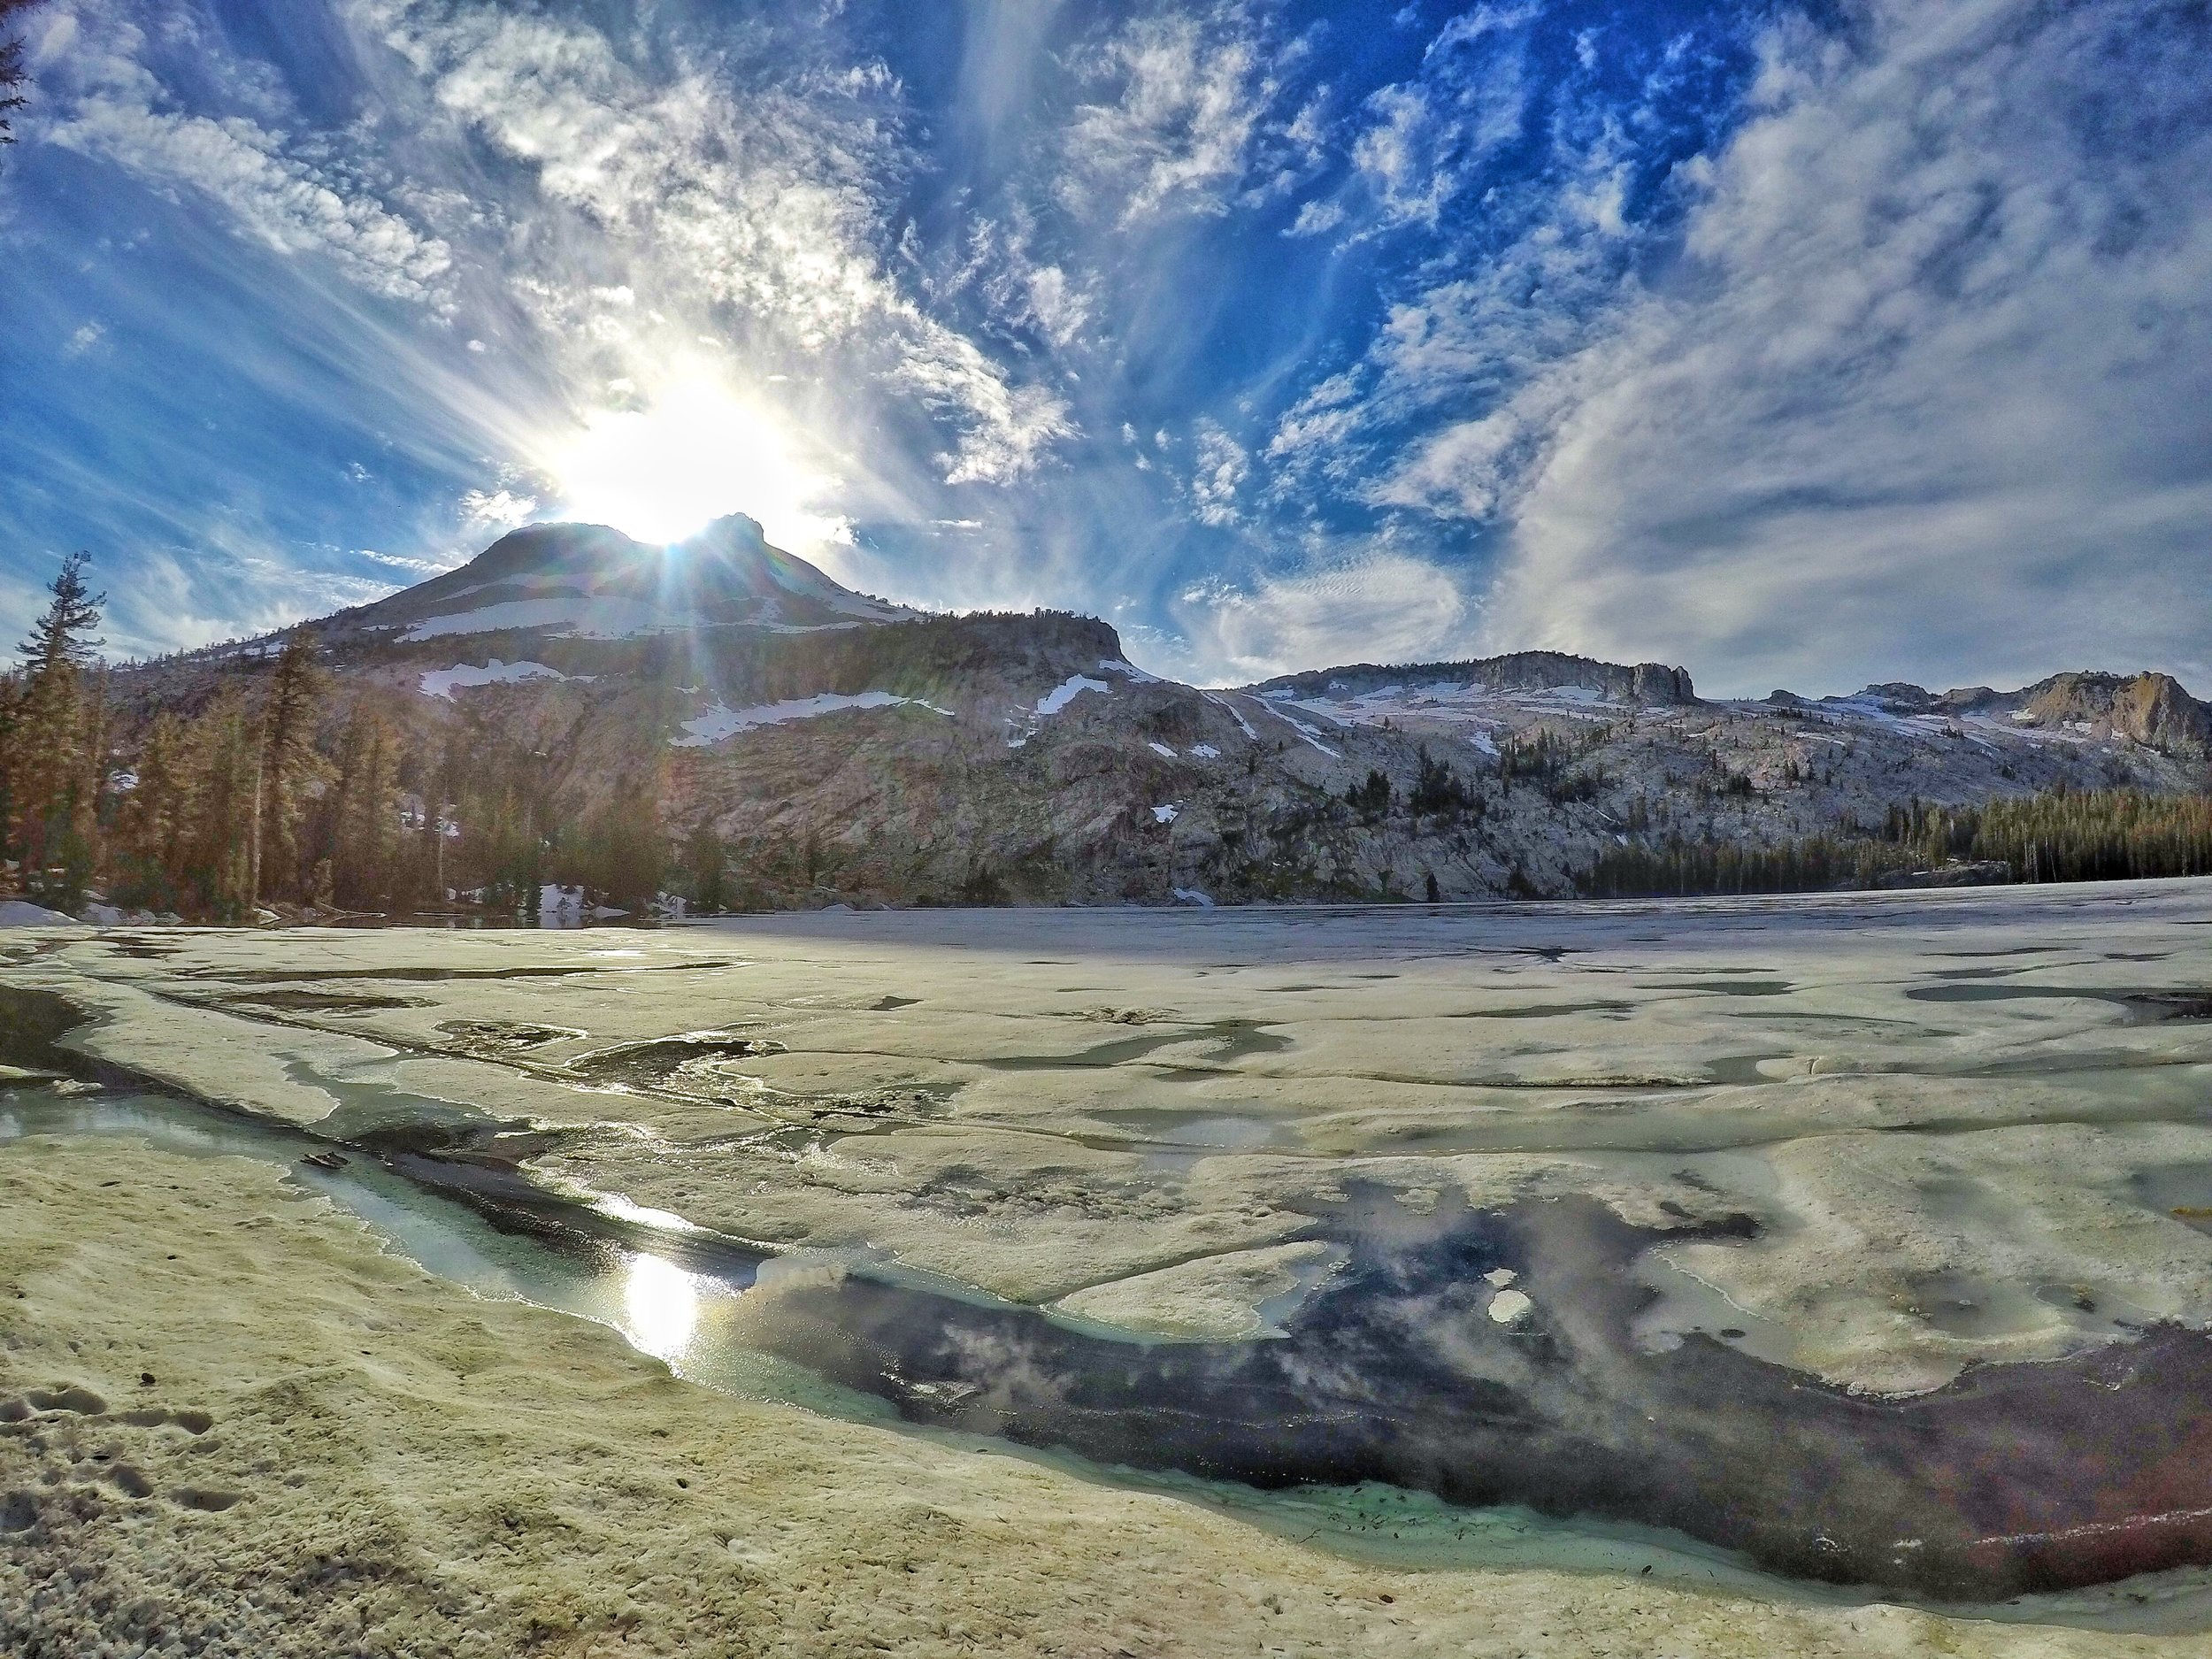 During the winter, the lake freezes, providing a spectacular winter scene for visitors.